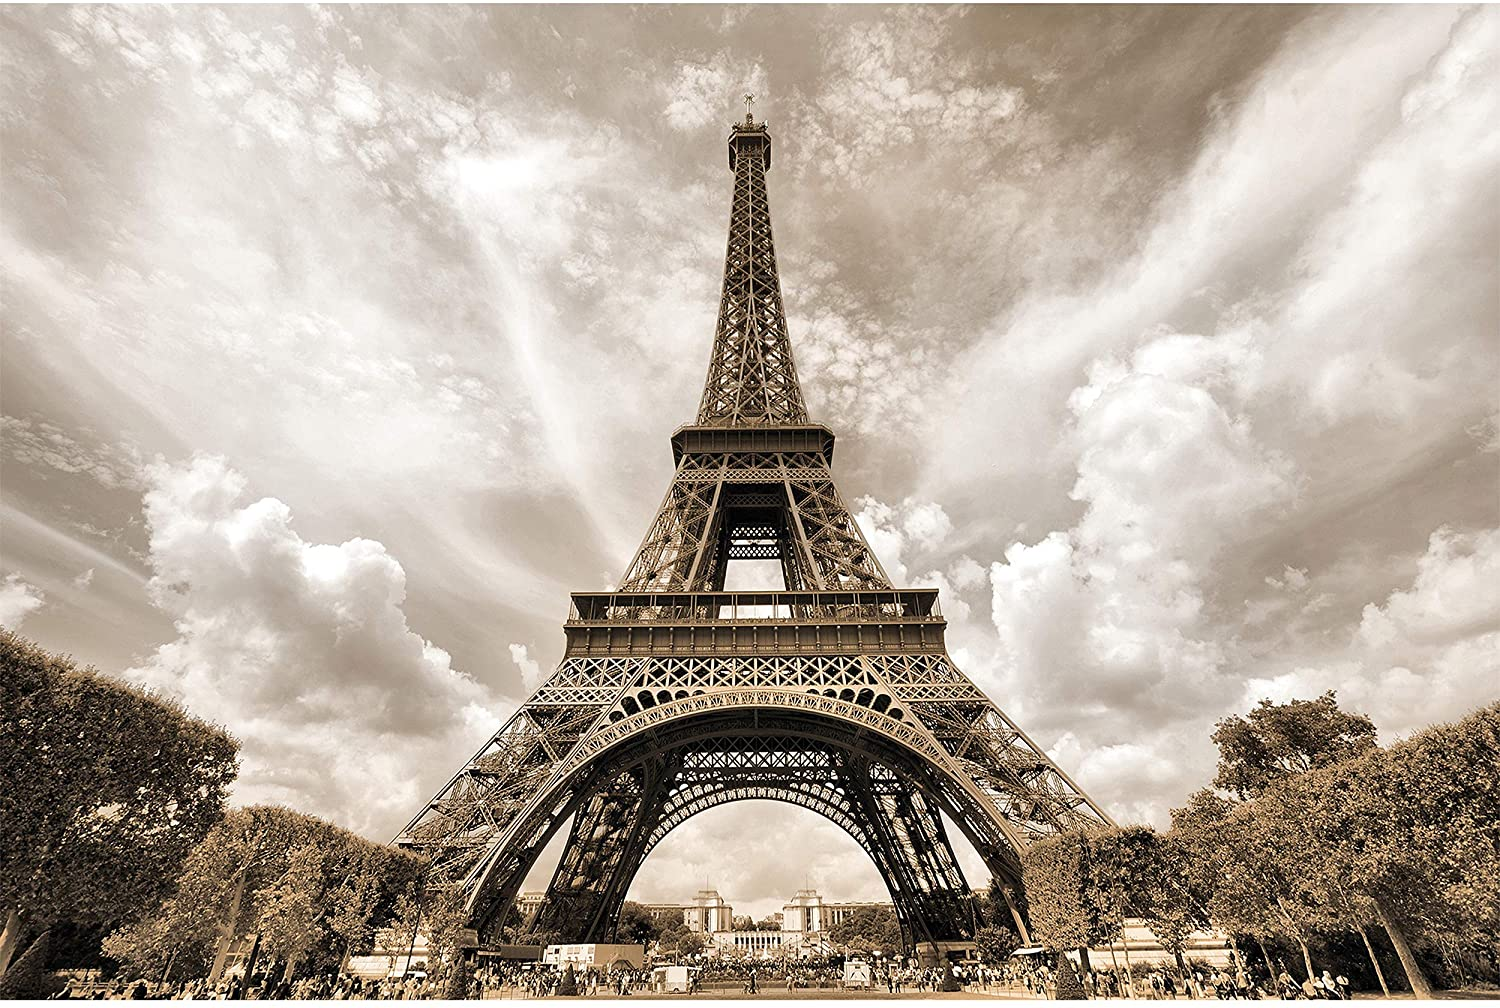 GREAT ART Poster – Eiffel Tower – Picture Decoration France Capital City Paris Monument Champ de Mars Radio TV Outlook Retro Style Image Photo Decor Wall Mural(55x39.4in - 140x100cm)